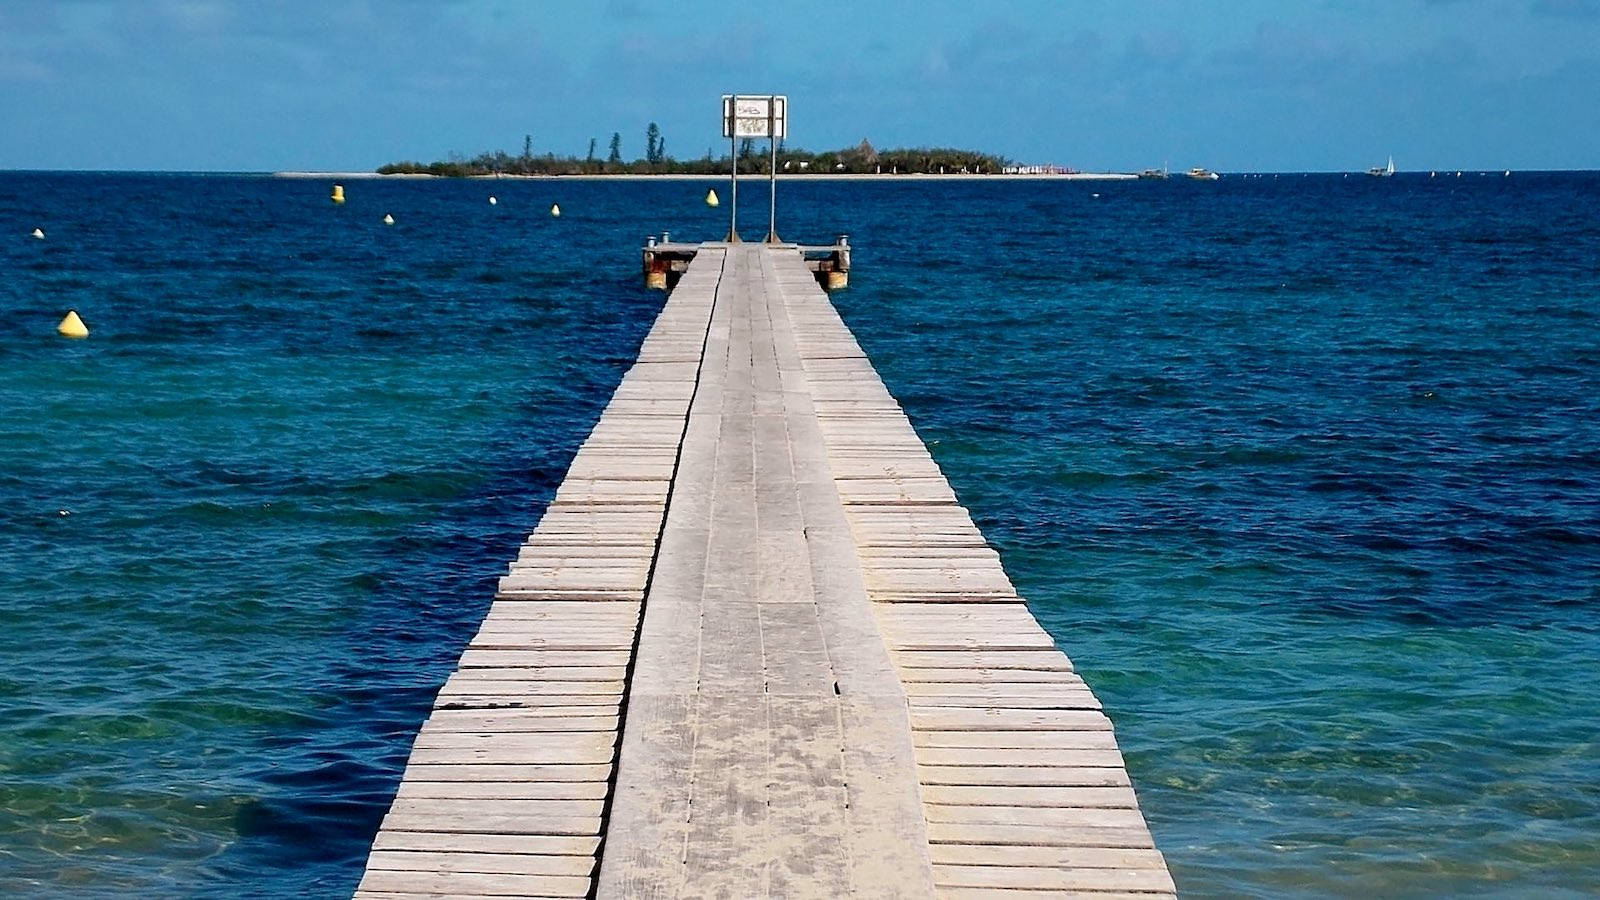 Under 1998 accords, New Caledonia could either be independent or have agreed on new arrangements by now (Photo: gérard/Flickr)